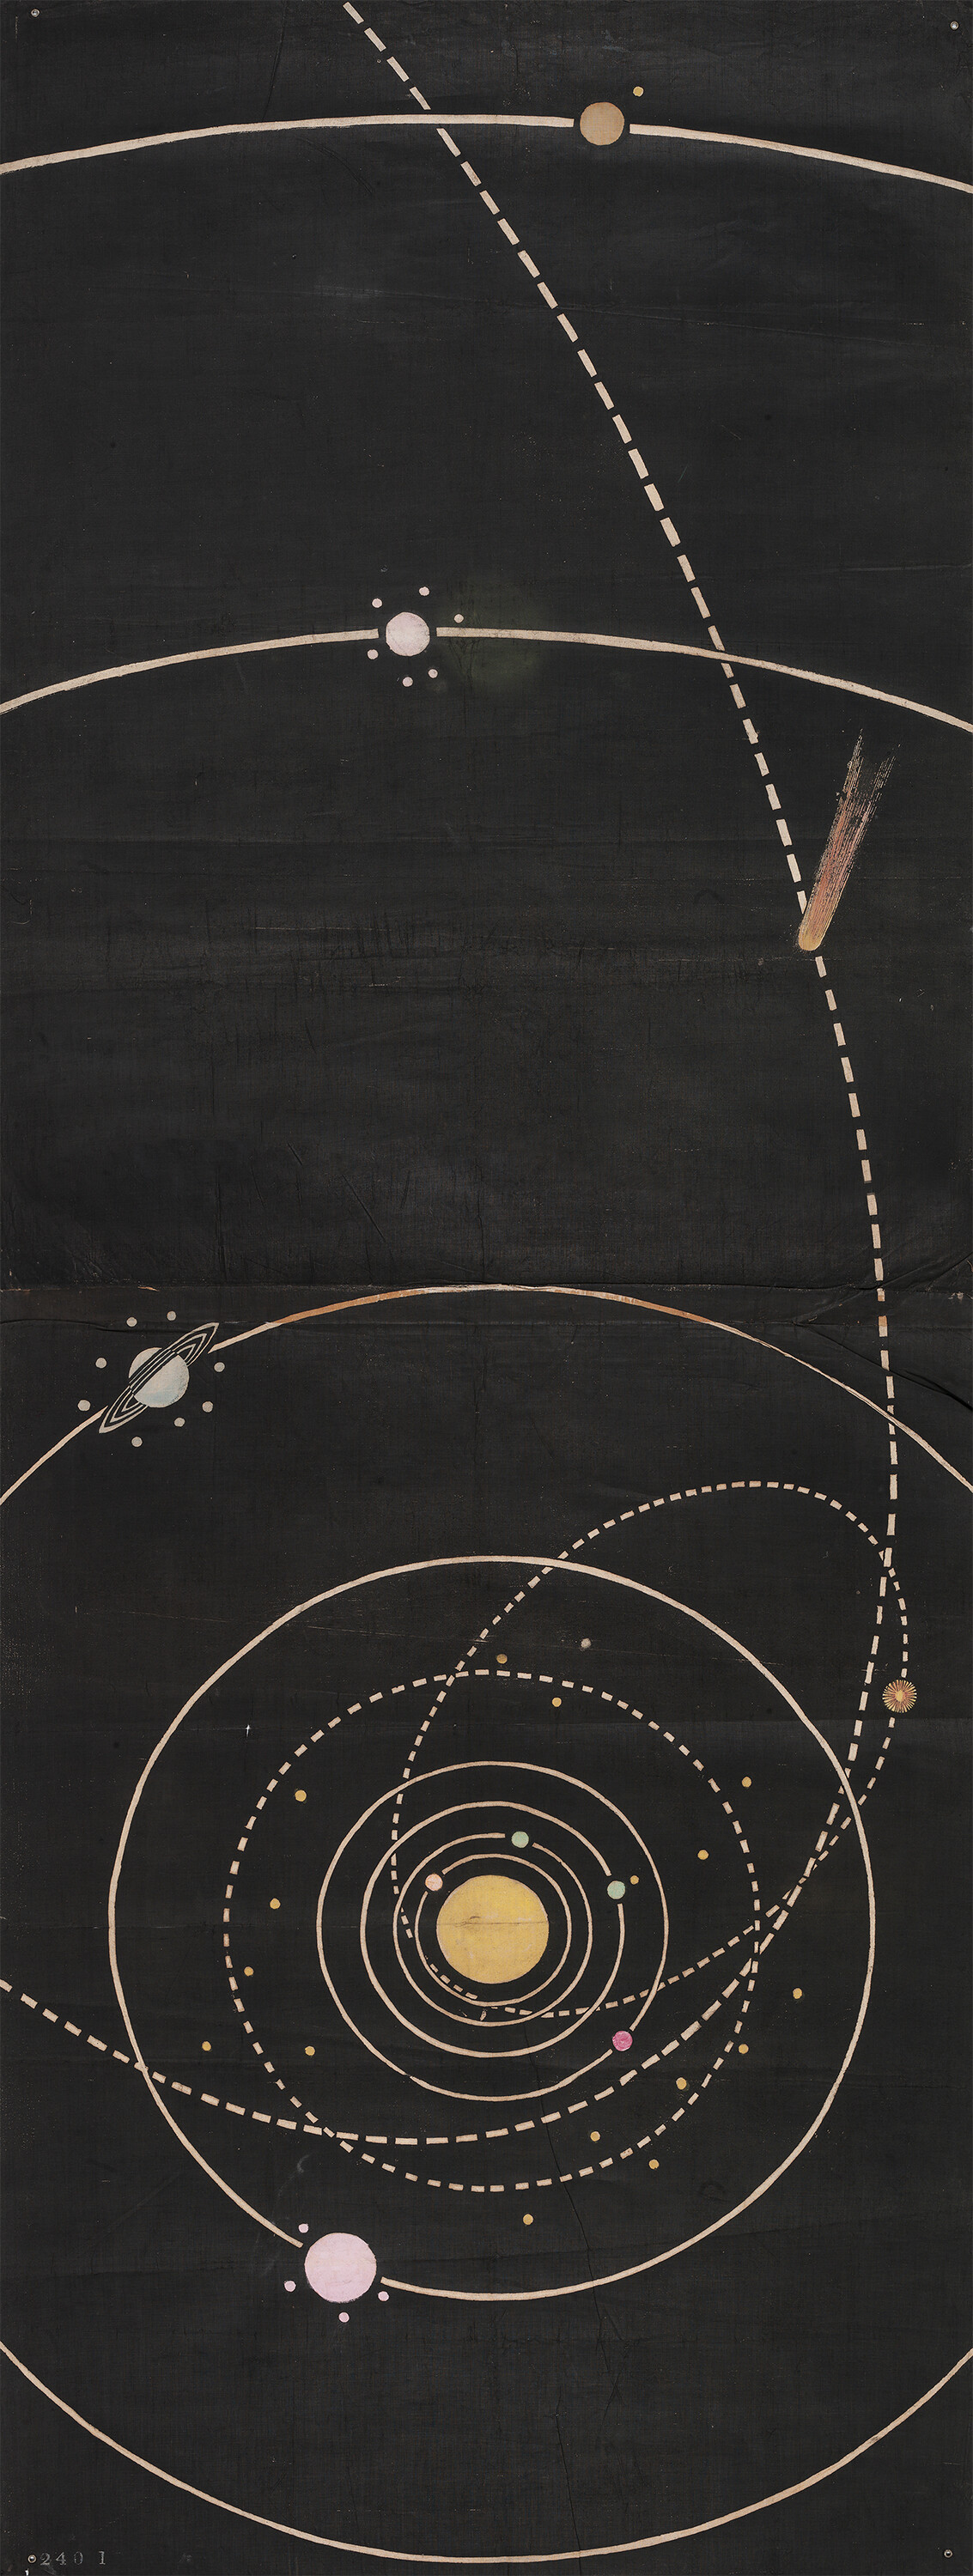 Print of an original wall hanging, showing the Solar System, c.1850-1860